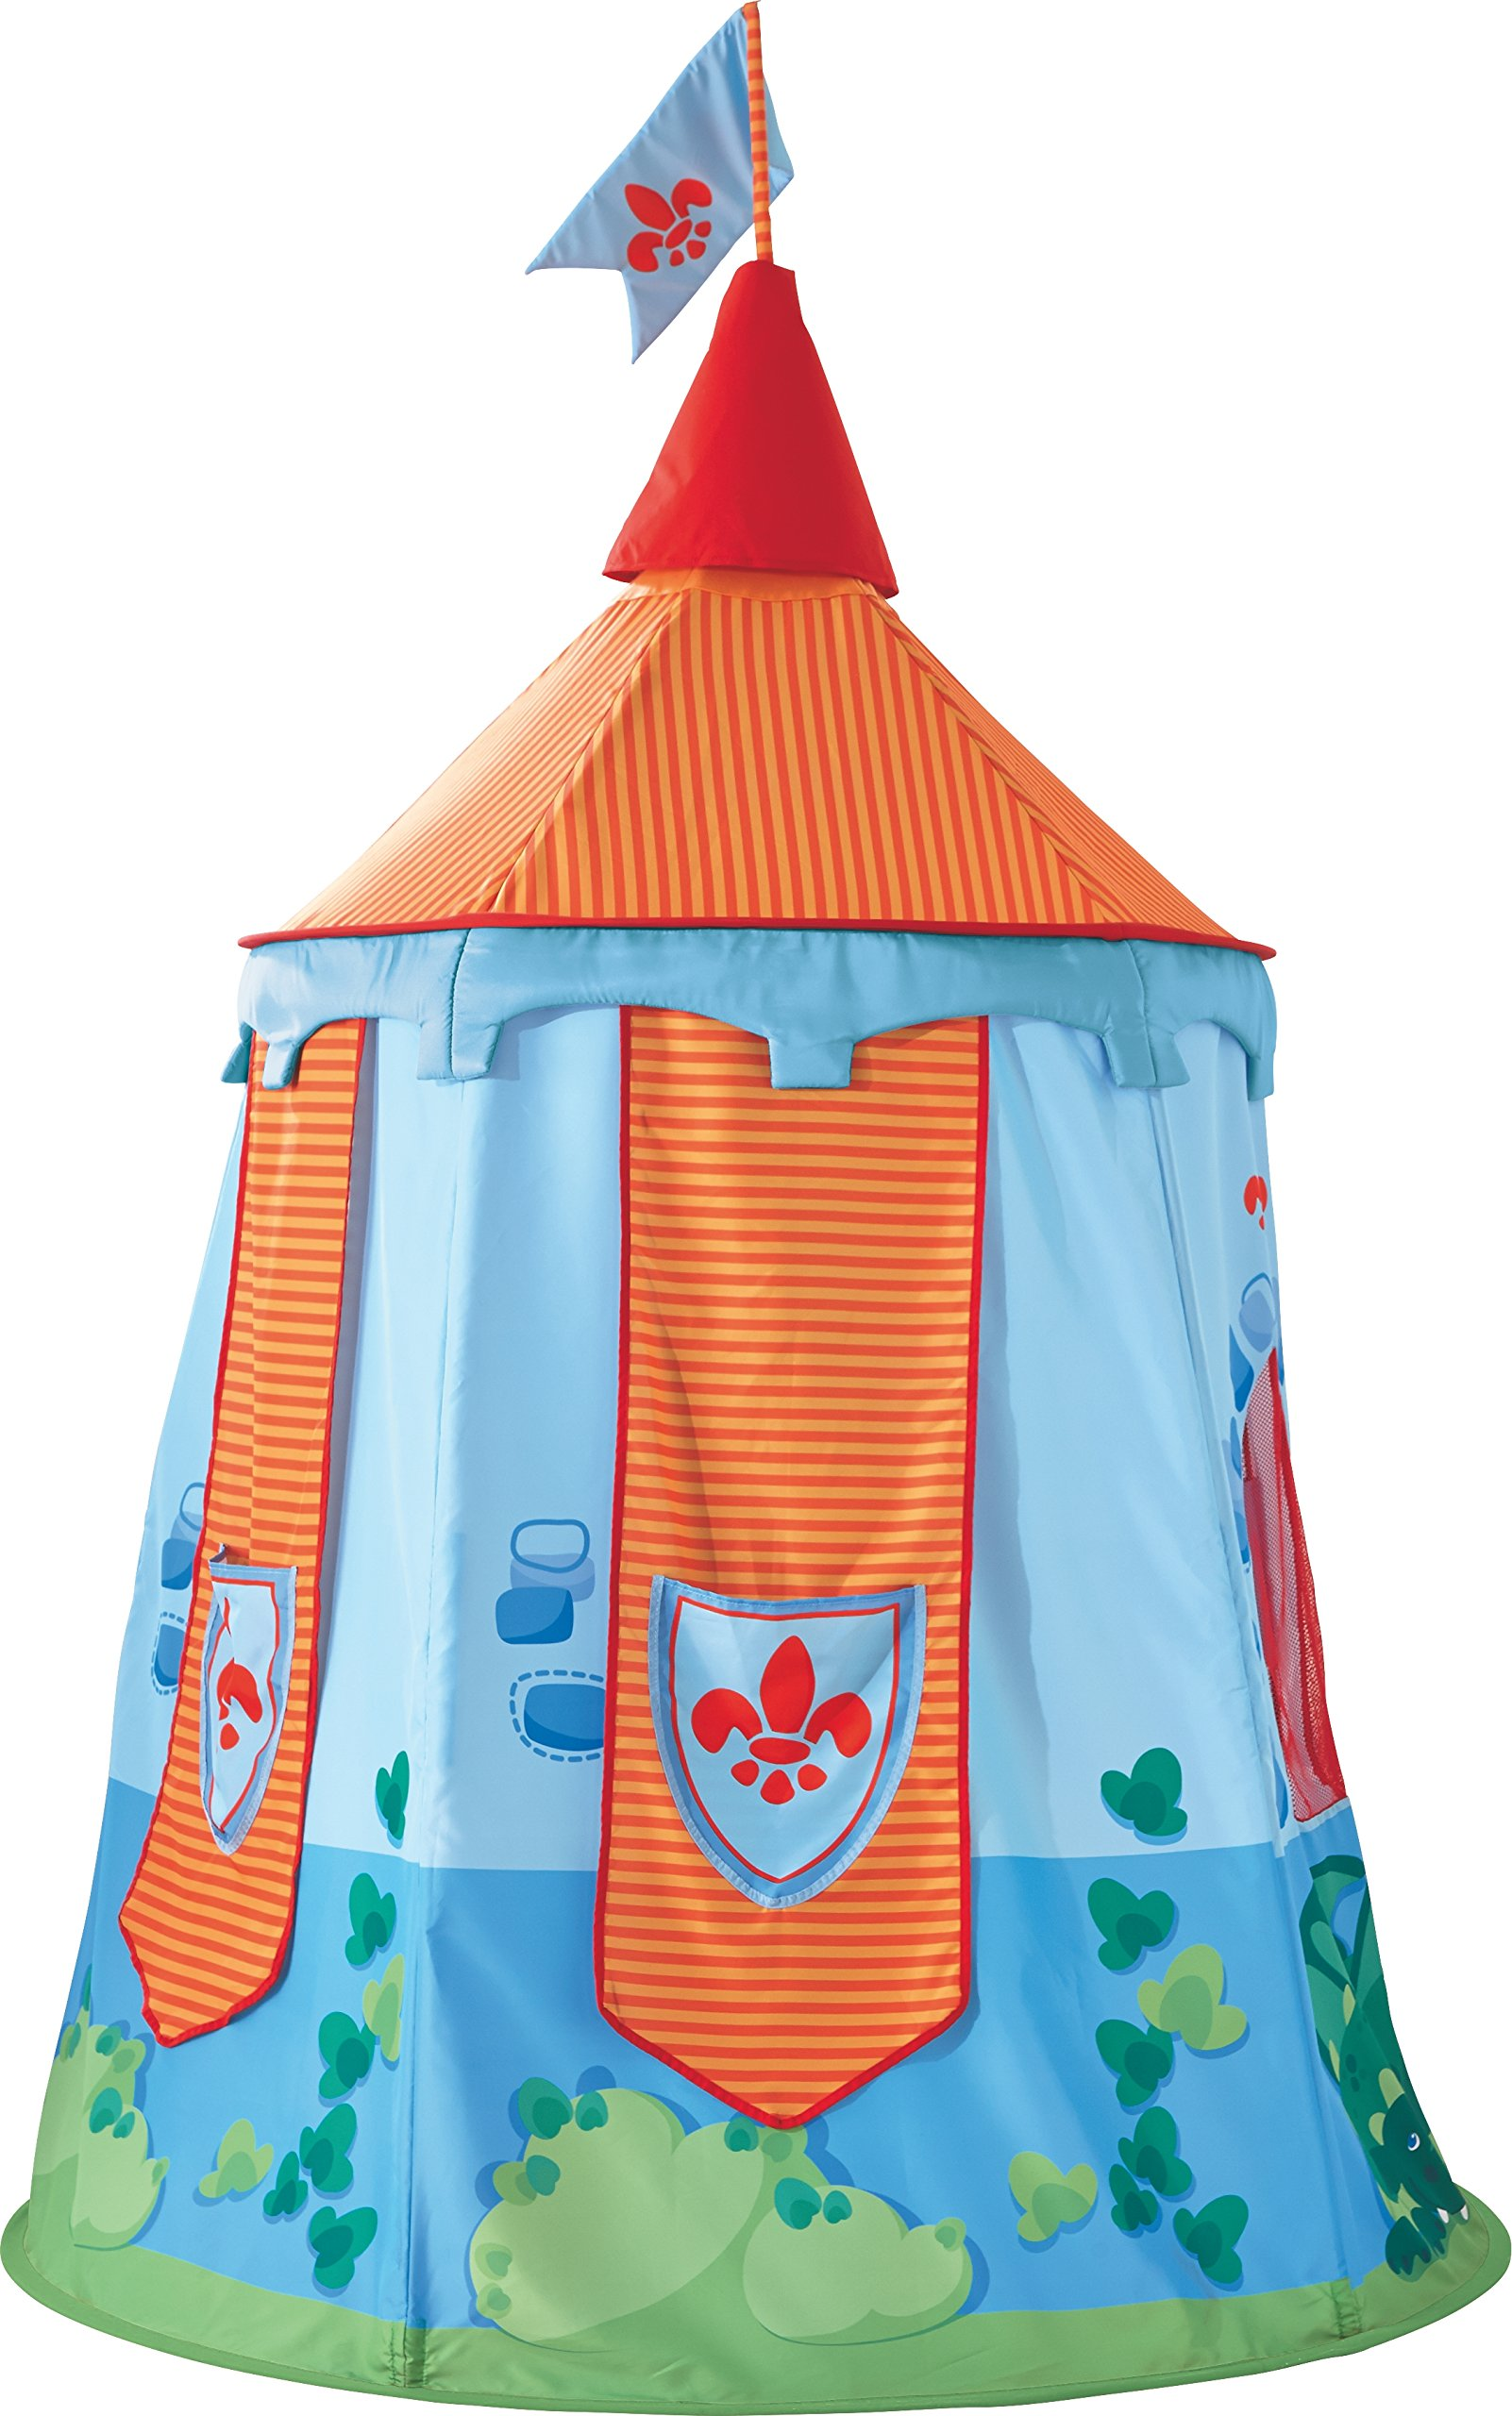 HABA Play Tent Knight's Hold - 75'' Castle Themed Playhouse - A Gallant Children's Bedroom Decor Accent